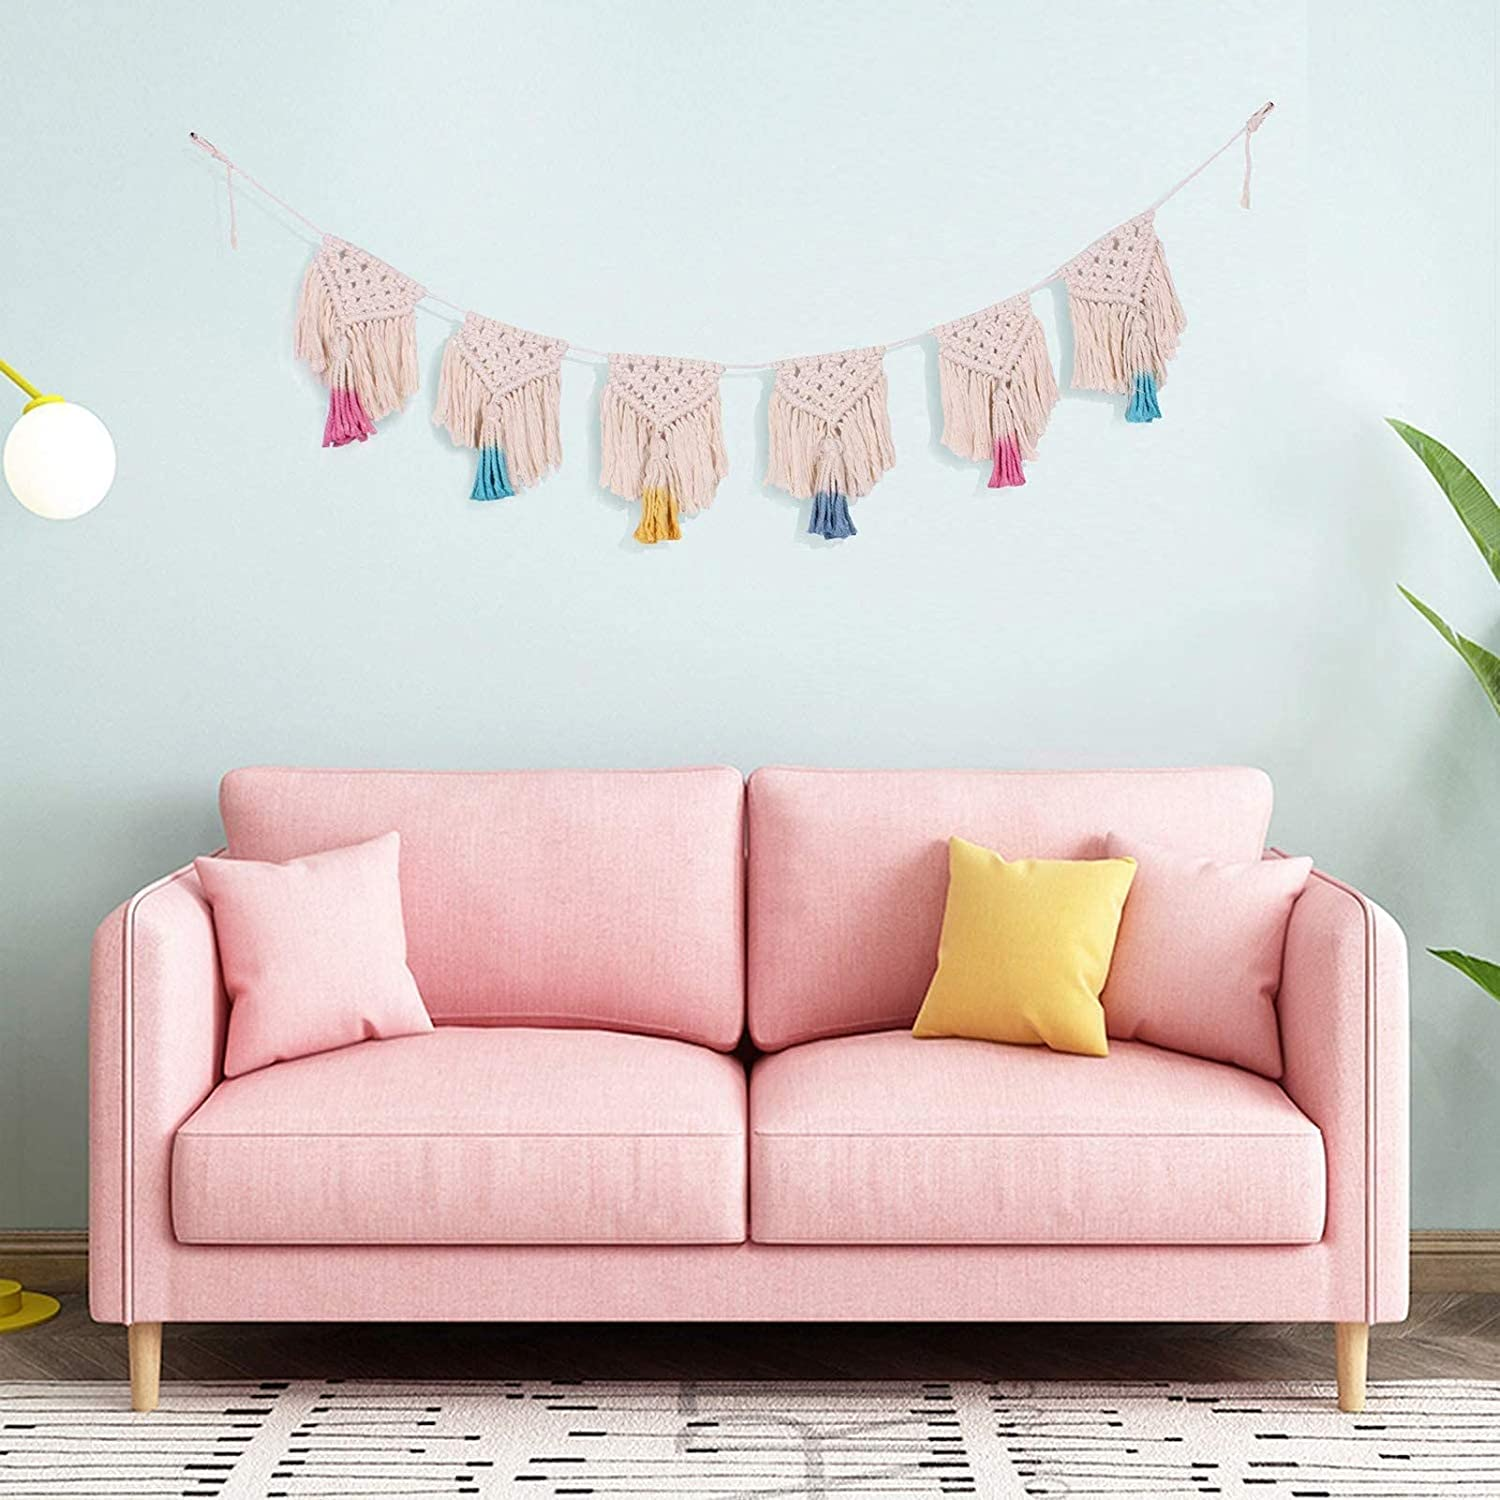 Heymax Boho Wall Decor Pastel Macrame Wall Hanging Banner Art Woven Wall Decor Woven Garlands Banner Bohemian Shabby Chic Home Decoration for Apartment Bedroom Living Room Nursery Girls Room Gallery